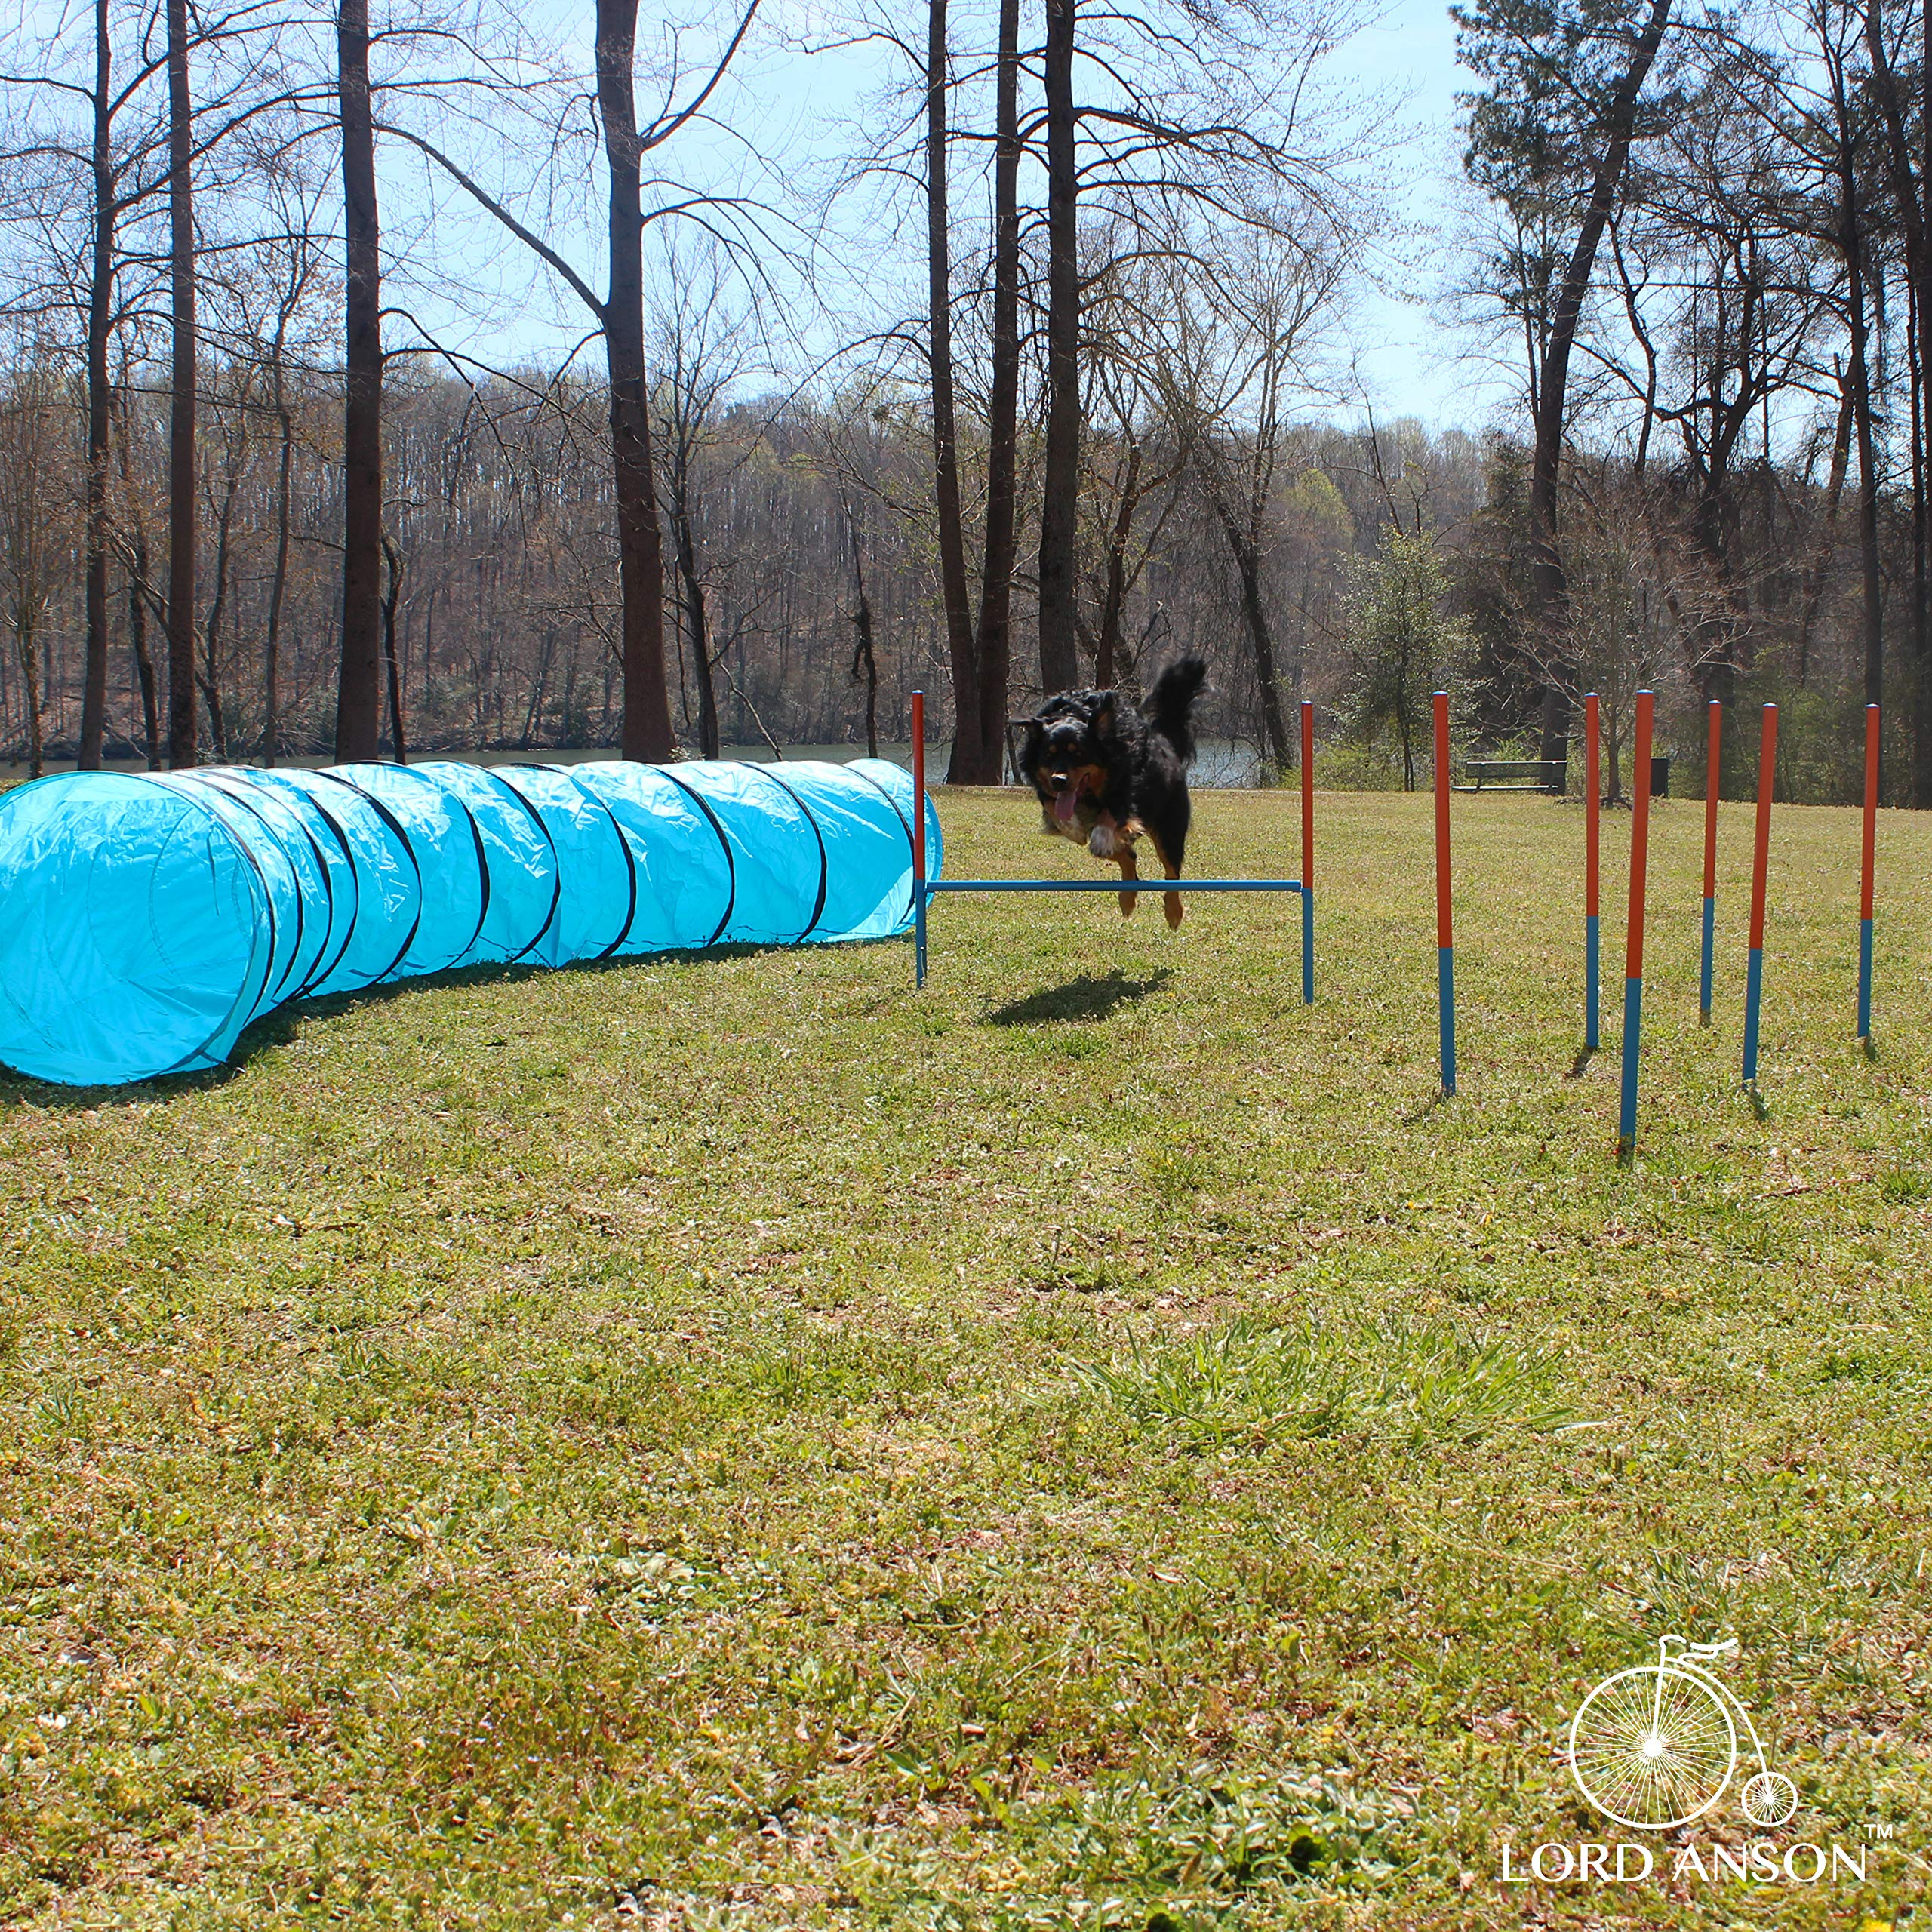 Lord AnsonTM Dog Agility Set - Dog Agility Equipment - 1 Dog Tunnel, 6 Weave Poles, 1 Dog Agility Jump - Canine Agility Set for Dog Training, Obedience, Rehabilitation by Lord Anson